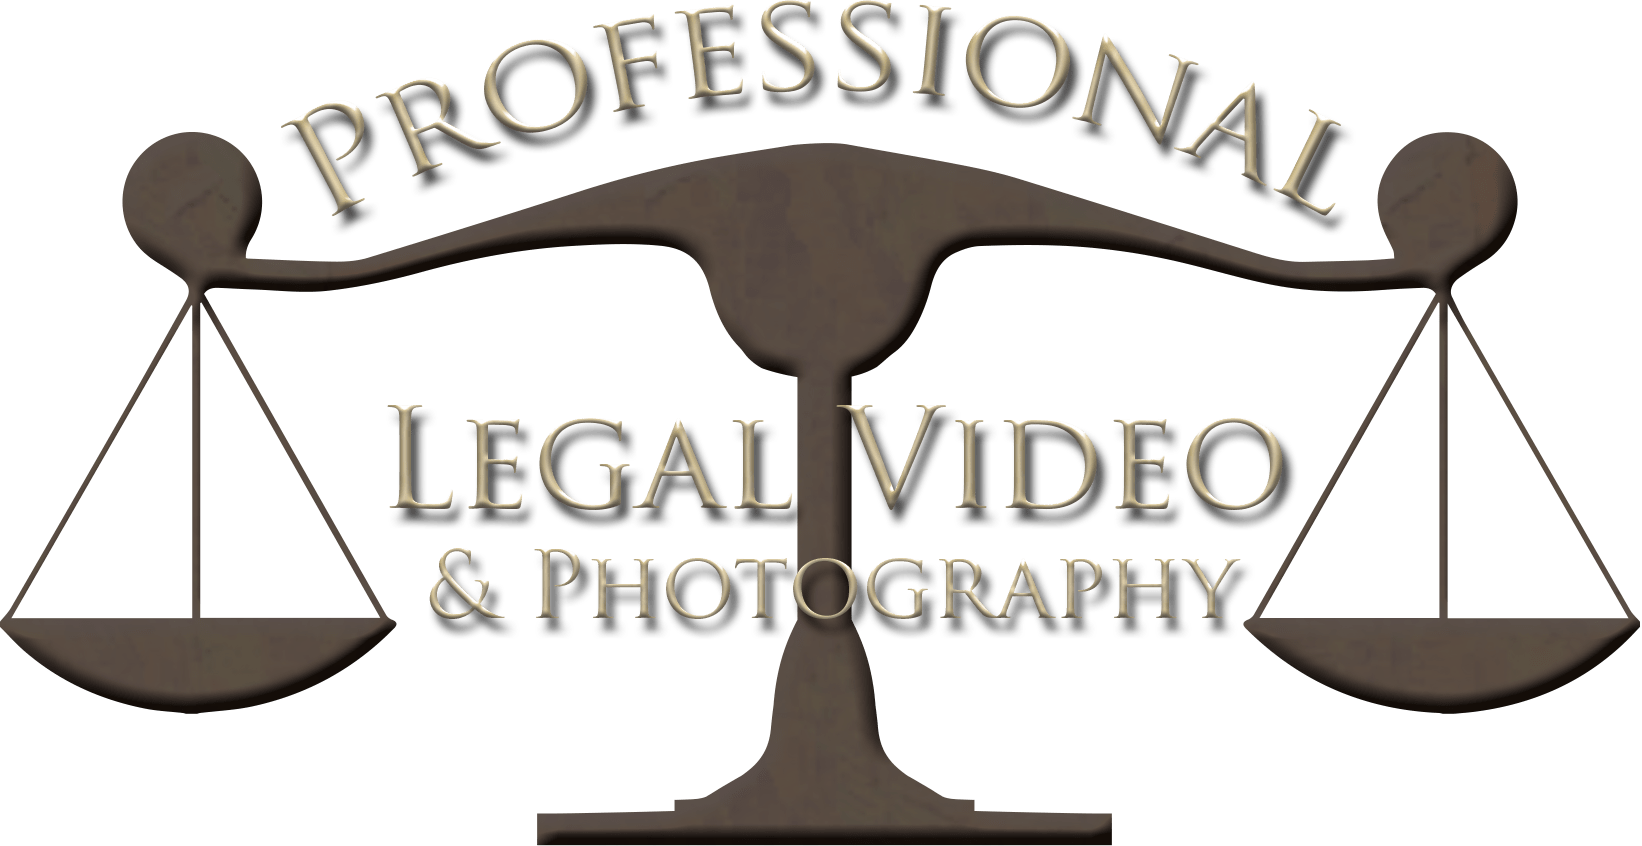 Professional Legal Video and Photography Logo